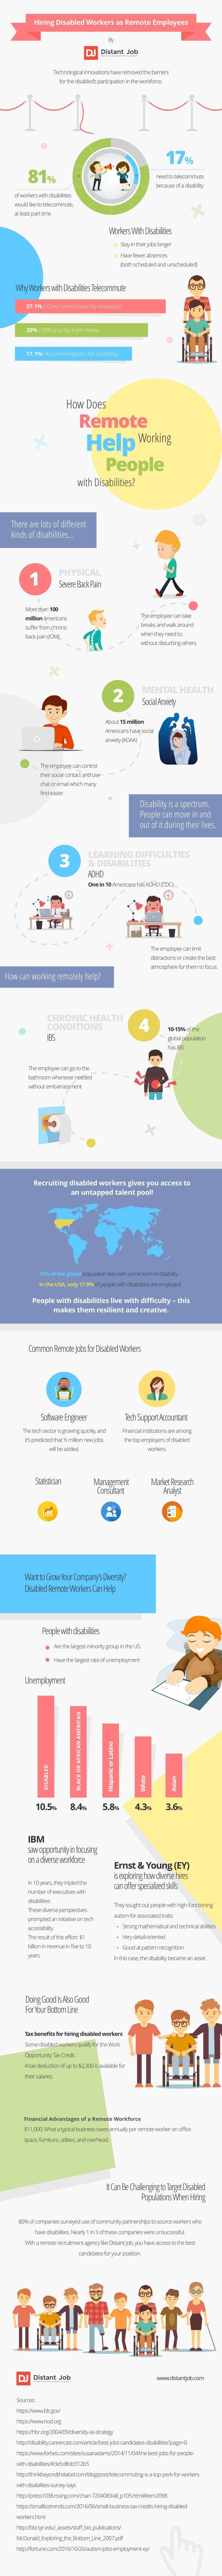 Hiri Disabled Workers as Remote Employees #infographicng